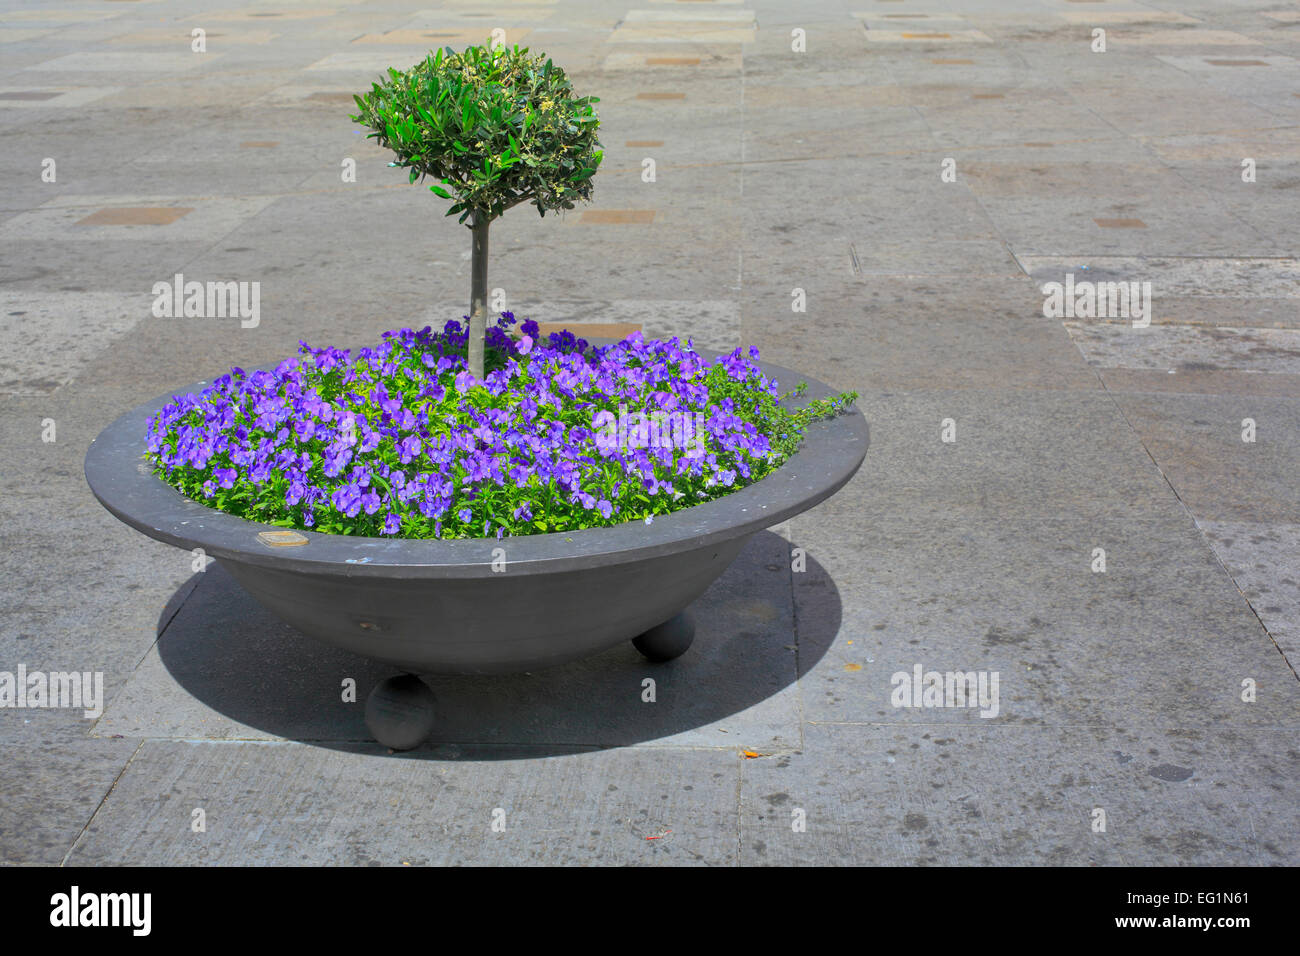 Flowerbed, Jaen, Andalusia, Spain Stock Photo